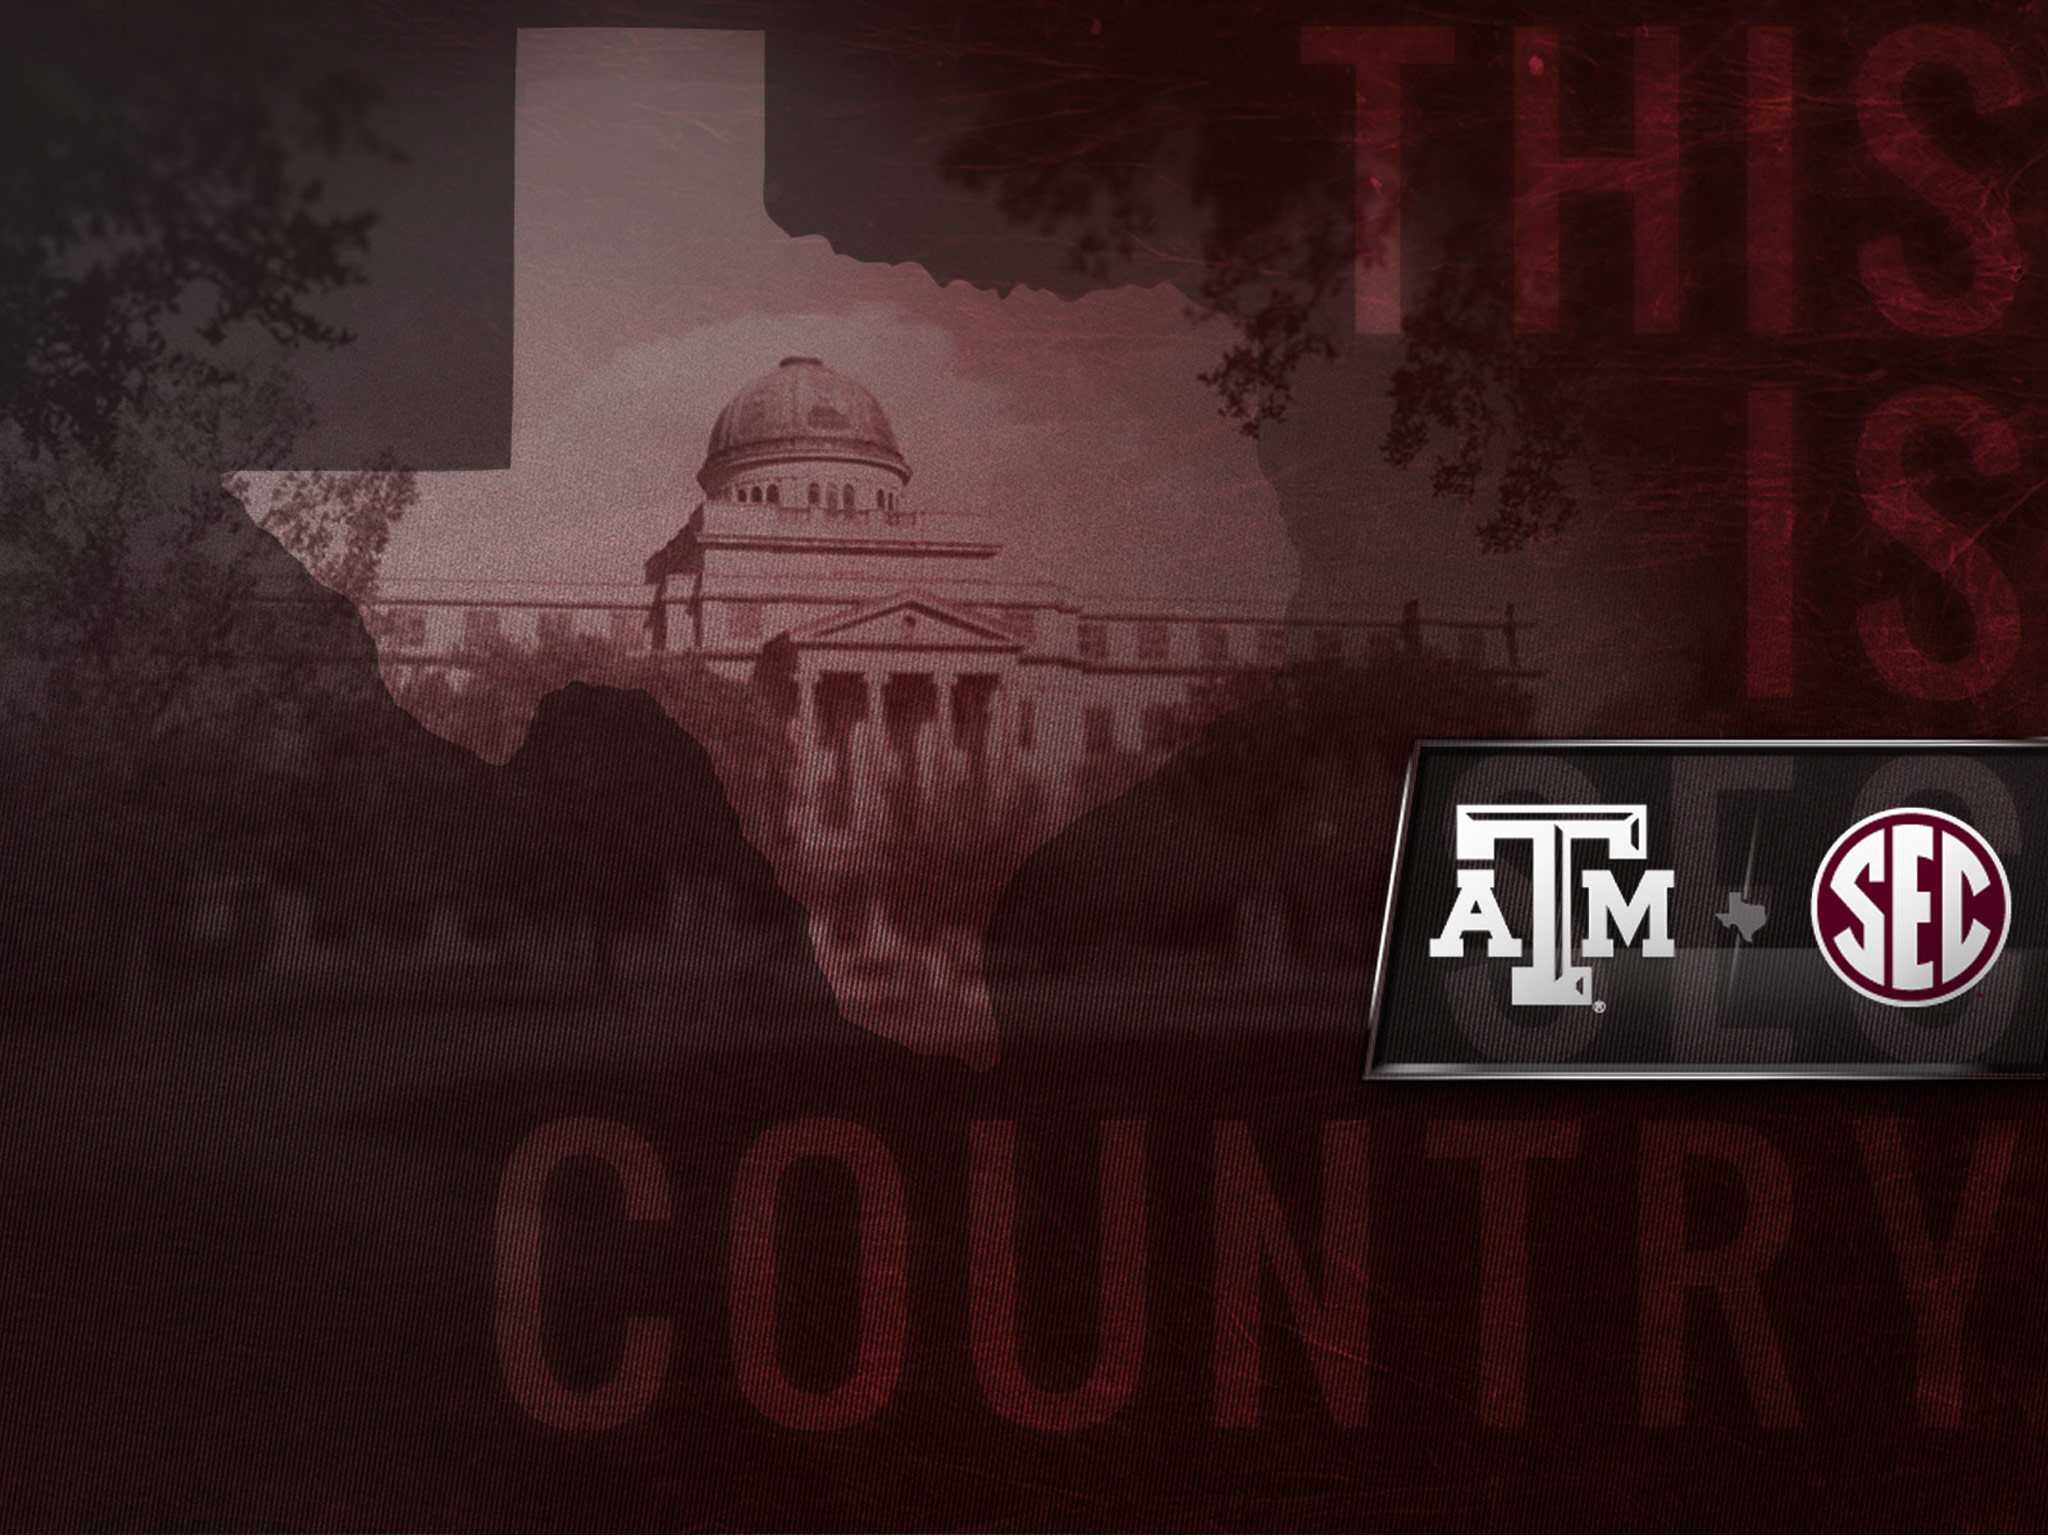 Texas Am University Wallpapers (75+ Images